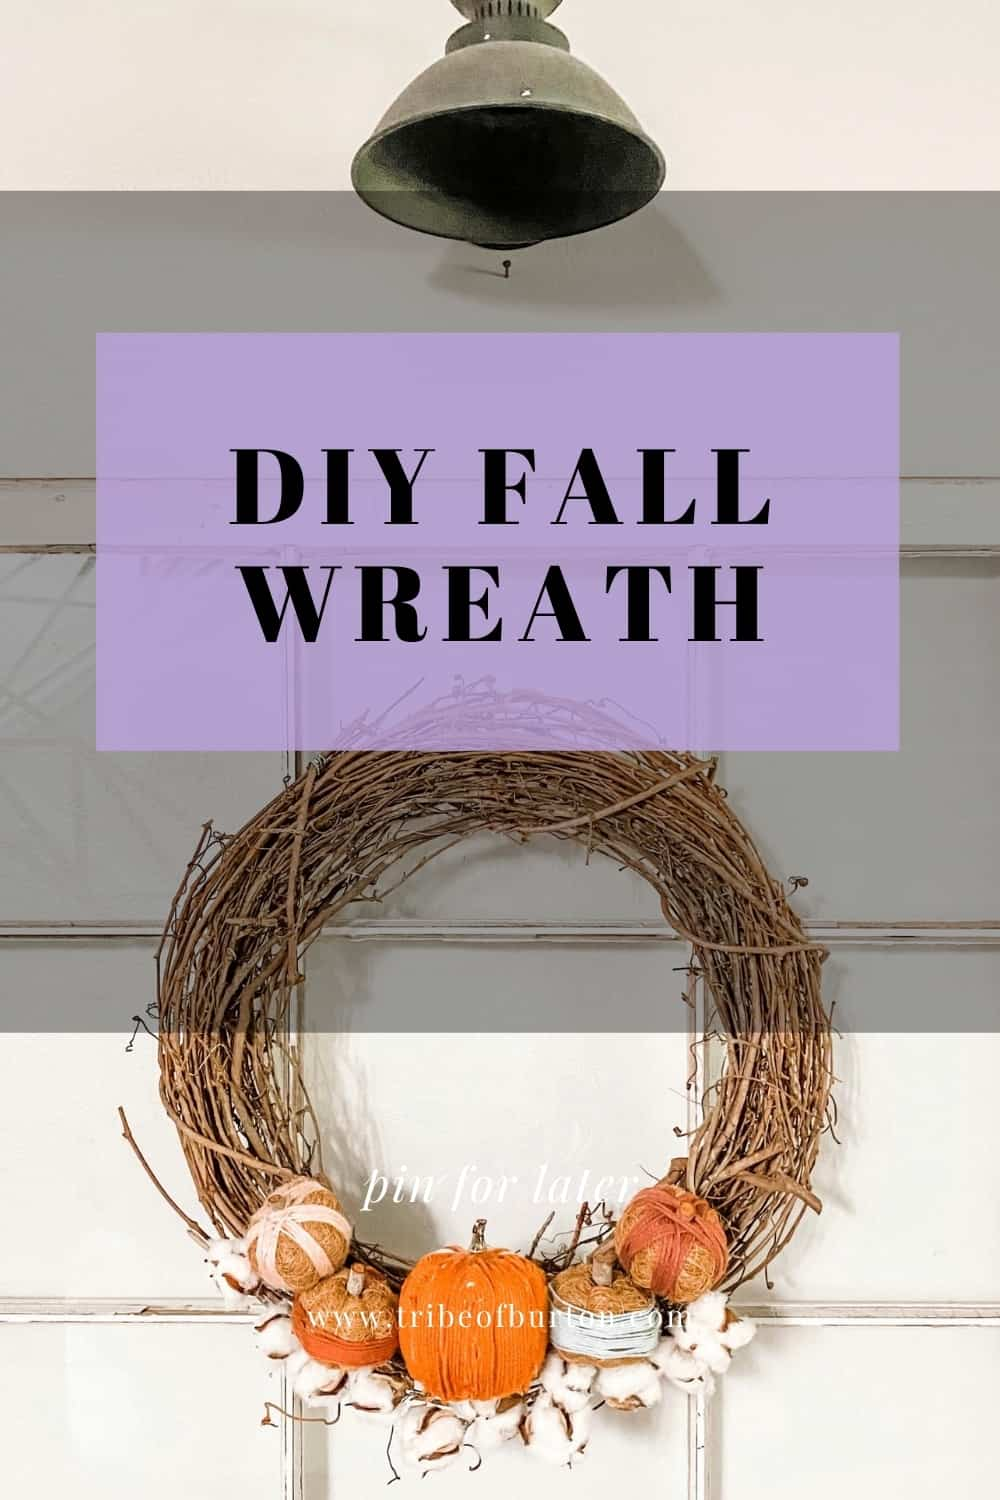 Pinterest Pin for DIY Fall Wreath